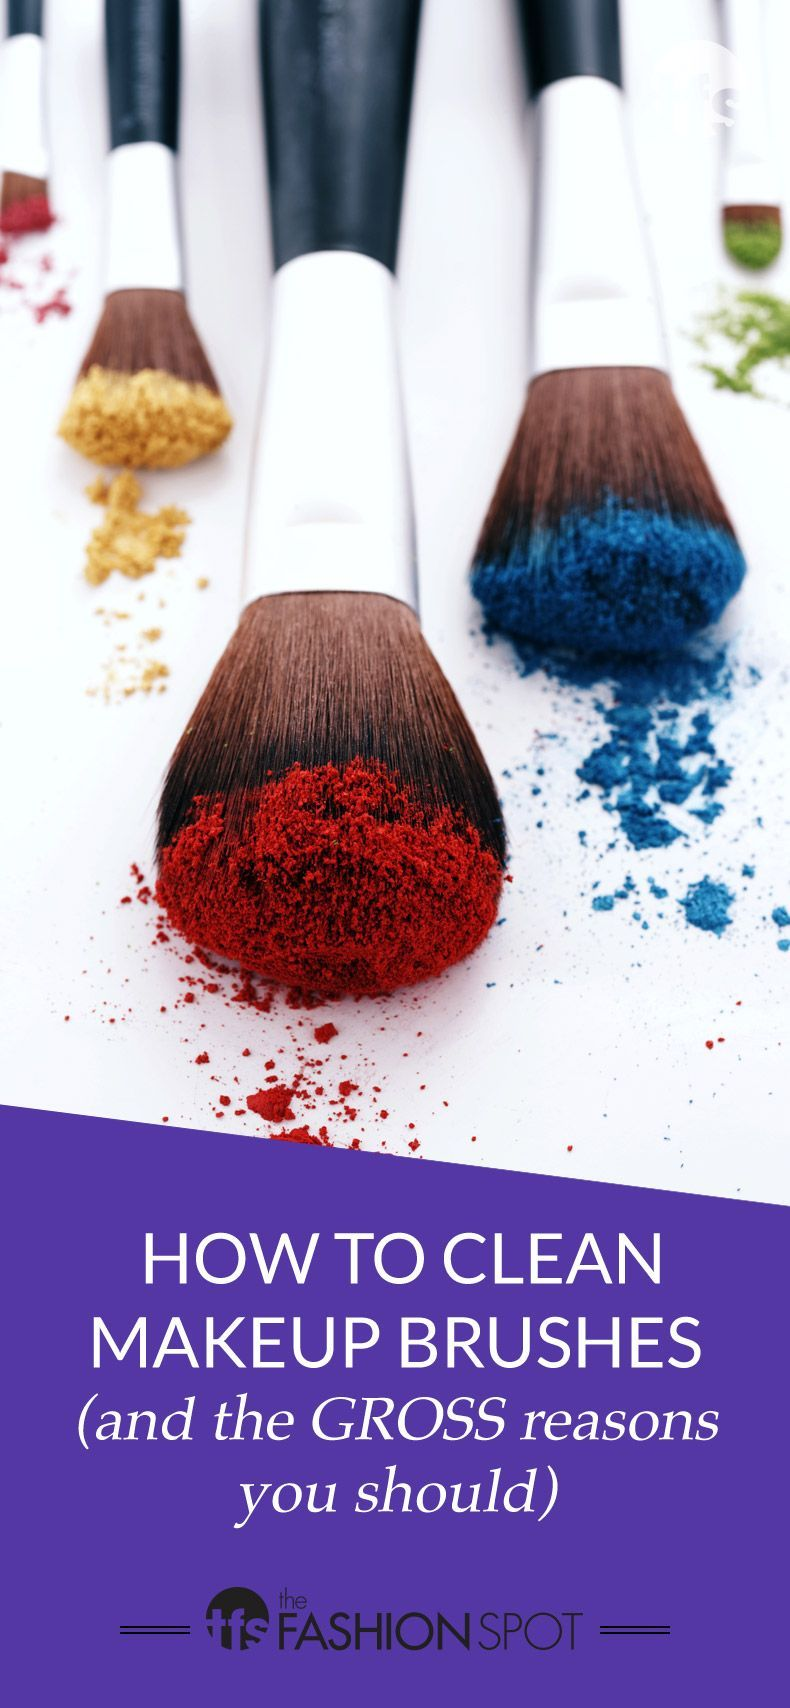 How to Clean Makeup Brushes (and the Gross Reasons Why You